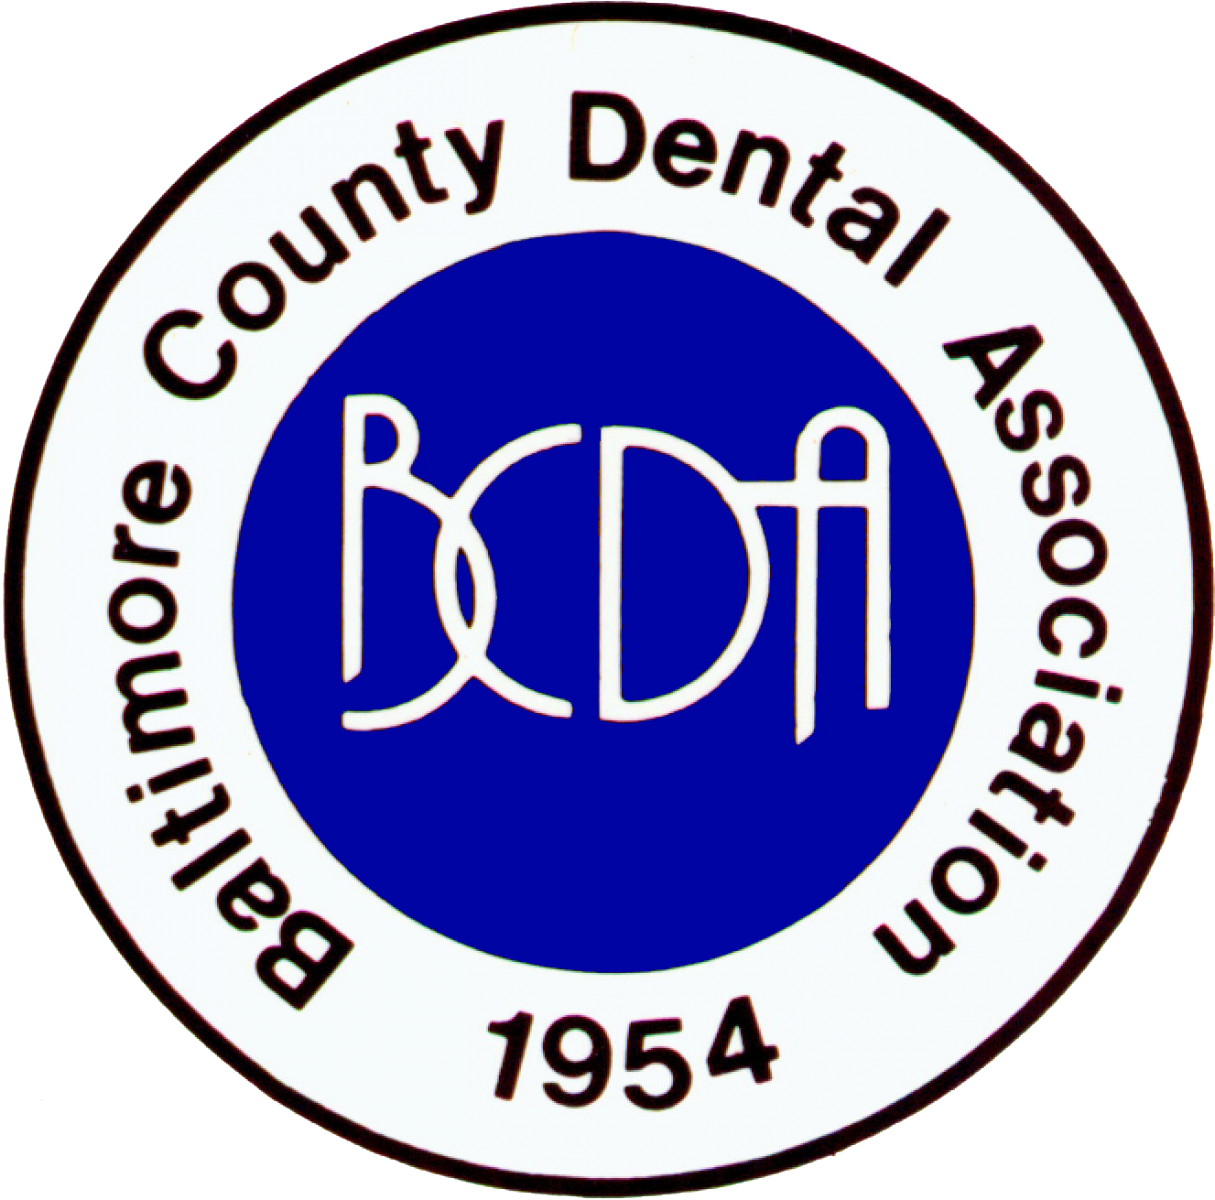 Baltimore County Dental Association